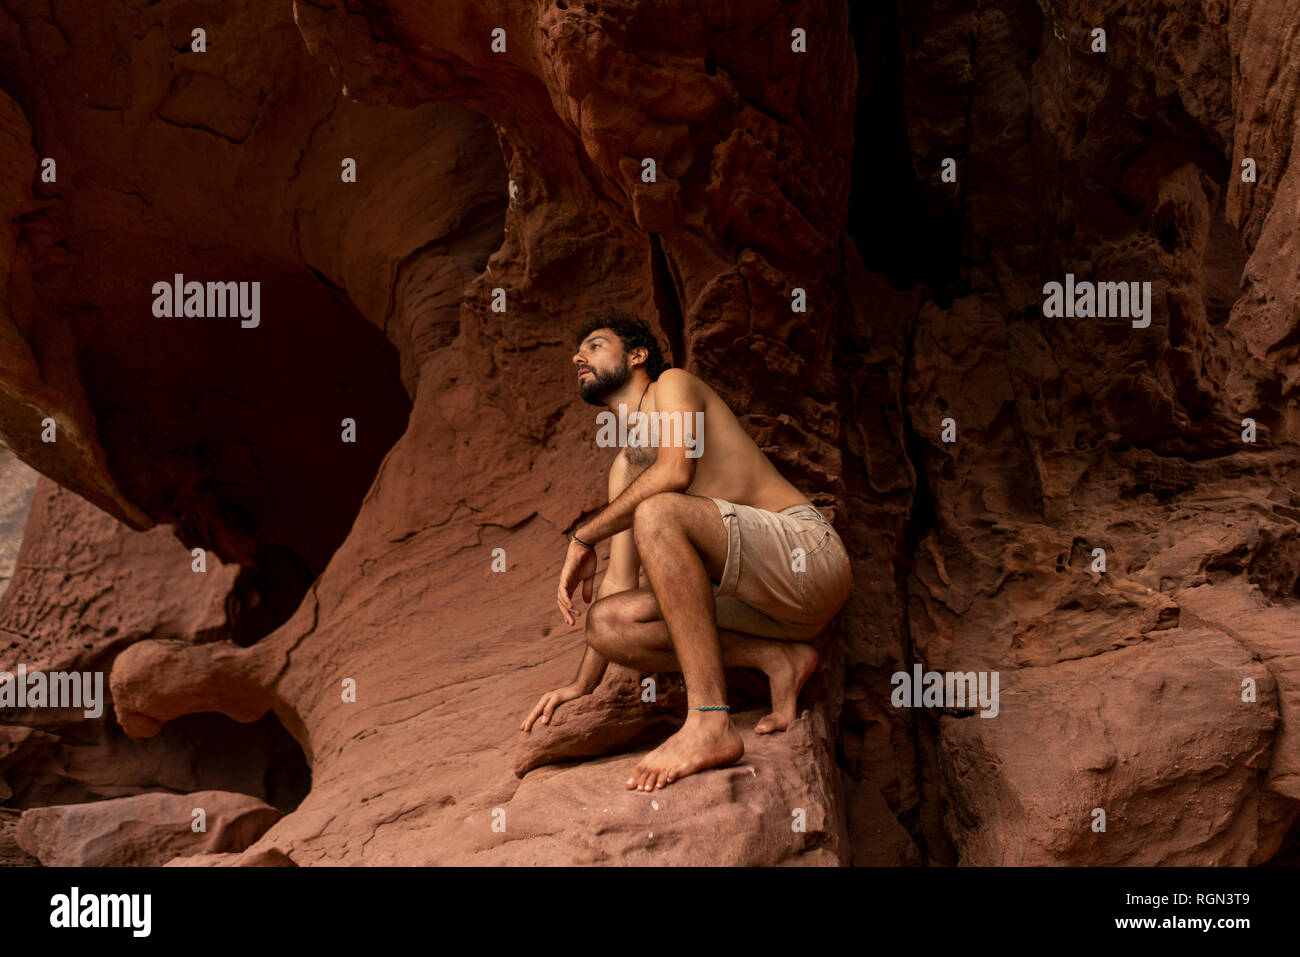 Young man exploring cave - Stock Image